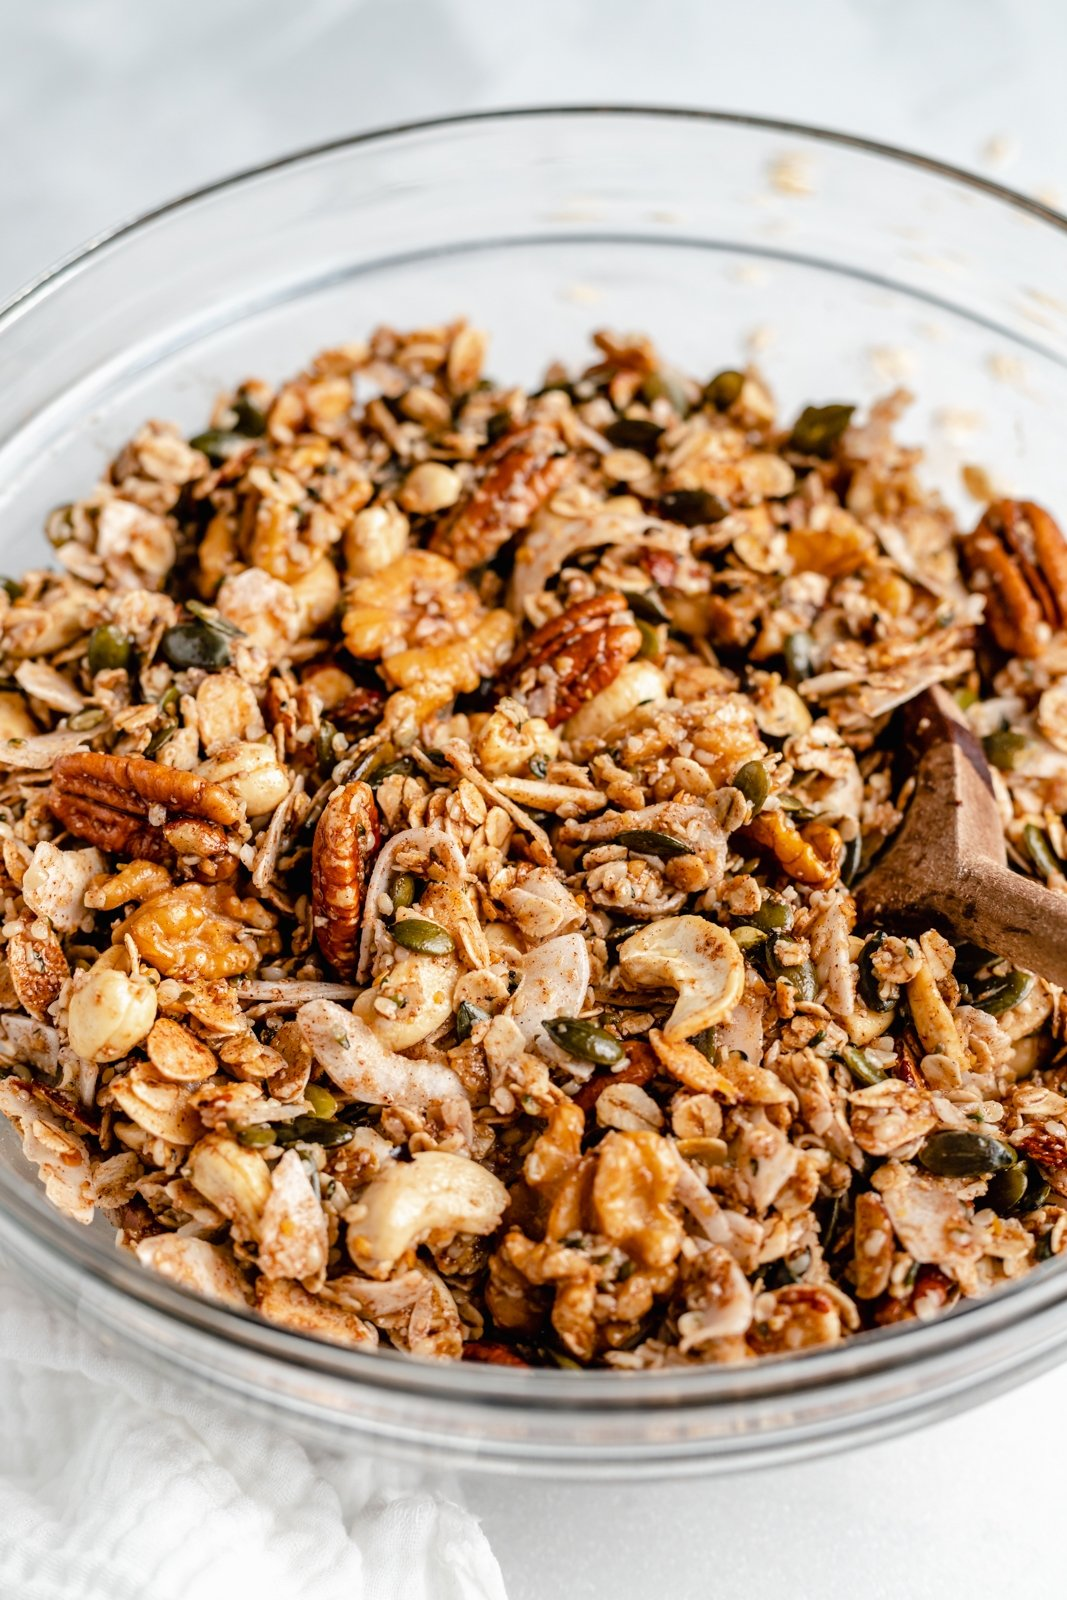 nut and seed granola recipe in a bowl